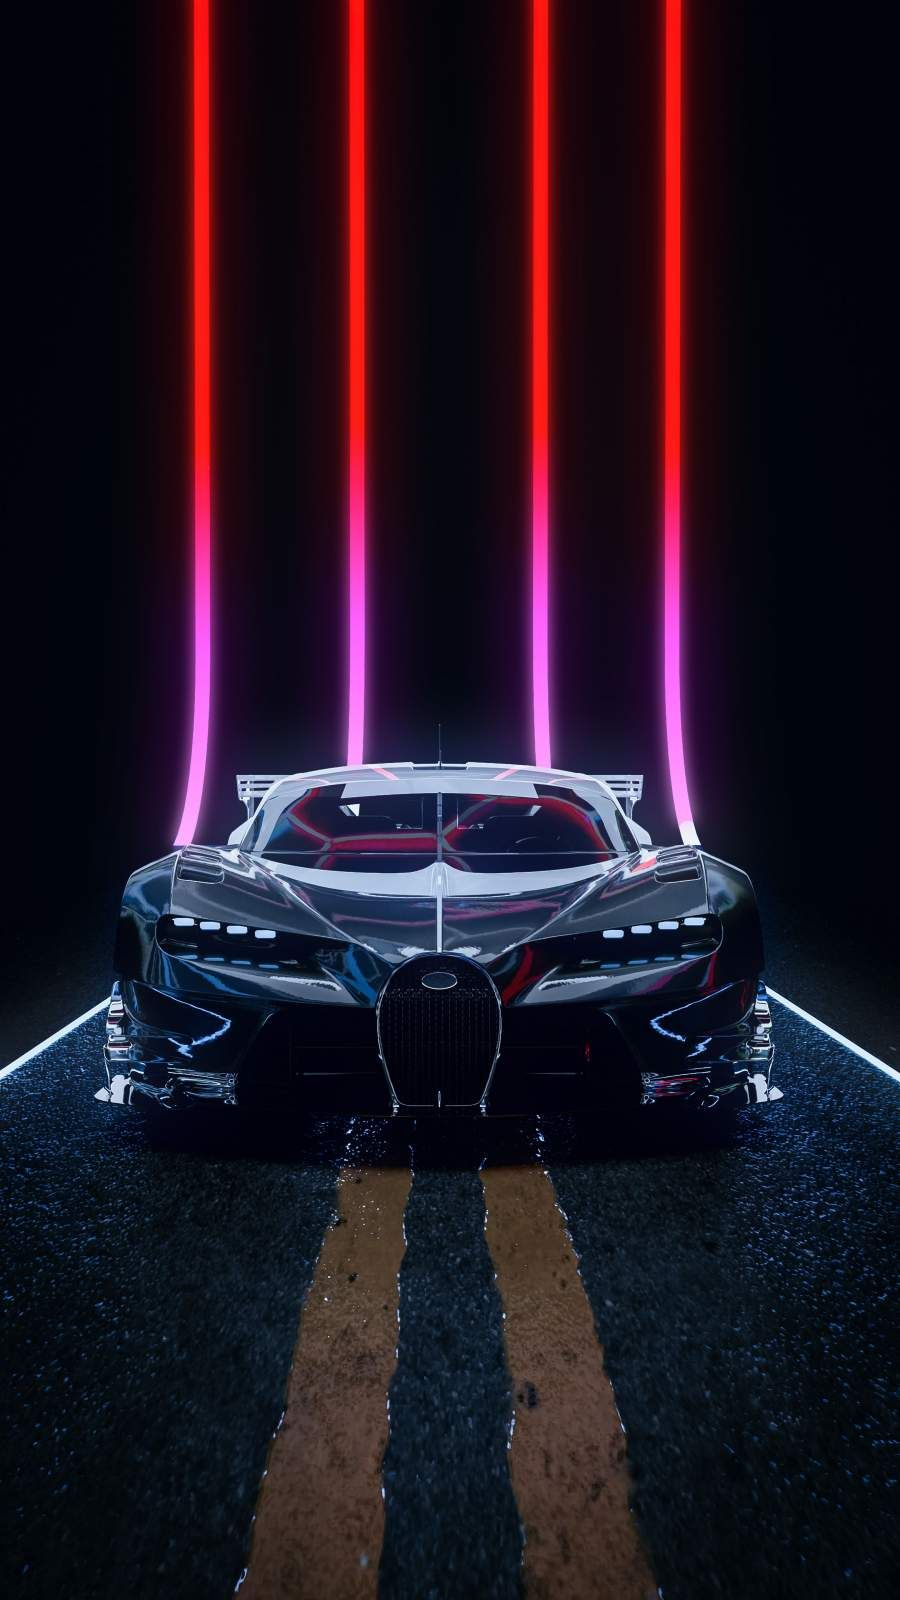 Iphone Wallpapers For Iphone 12 Iphone 11 Iphone X Iphone Xr Iphone 8 Plus High Quality Wallpapers Ip Bugatti Wallpapers Bugatti Cars Sports Car Wallpaper